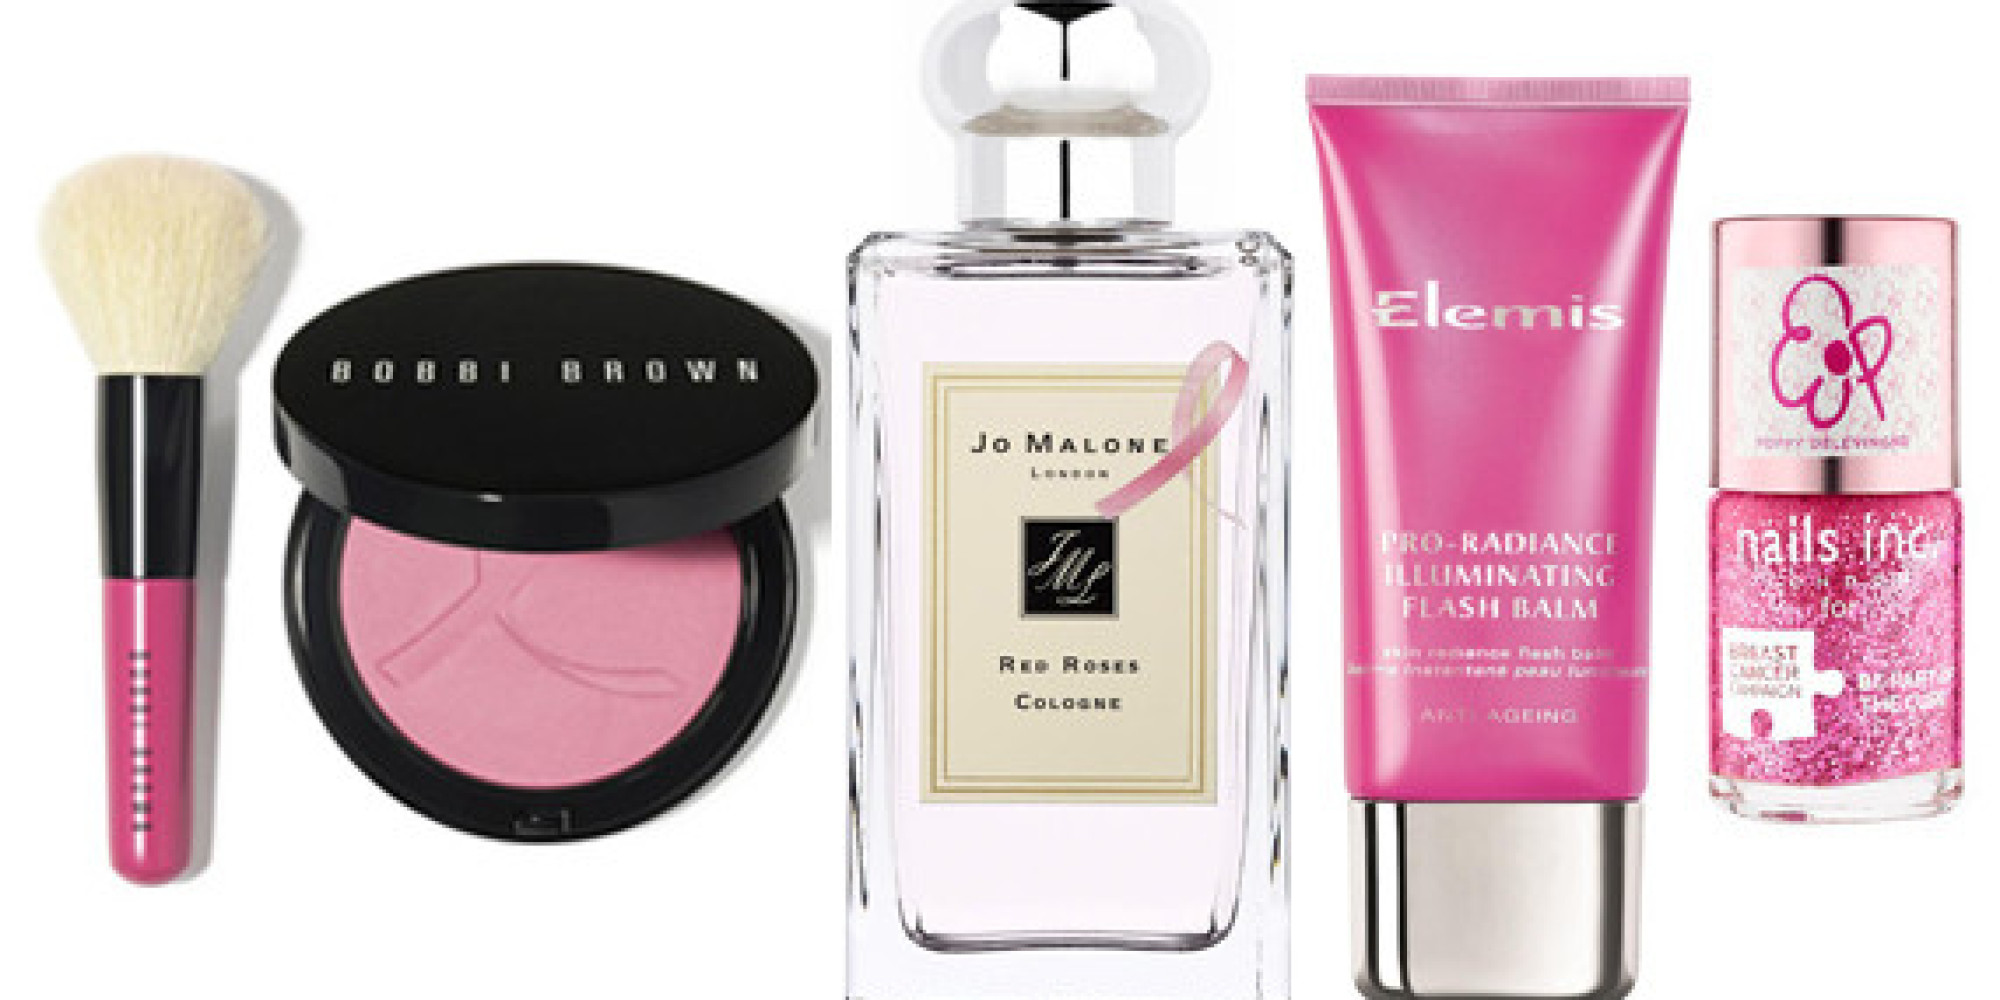 products for breast cancer jpg 1200x900